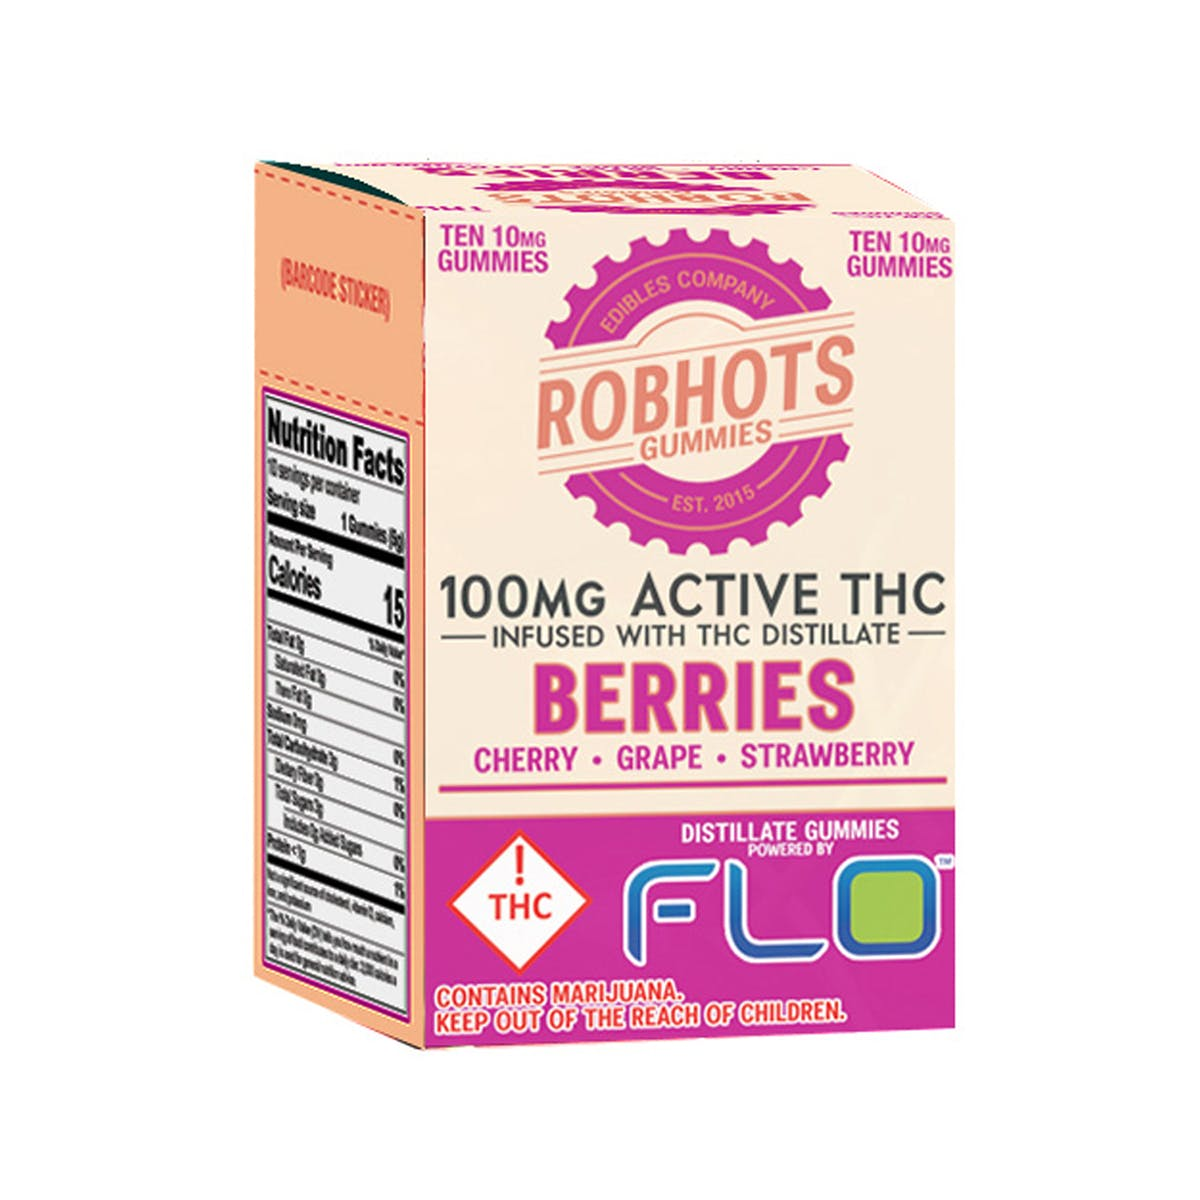 marijuana-dispensaries-buddy-boy-north-denver-a-c2-80-c2-93-rec-21-2b-in-denver-berries-100mg-robhots-gummy-multipack-rec